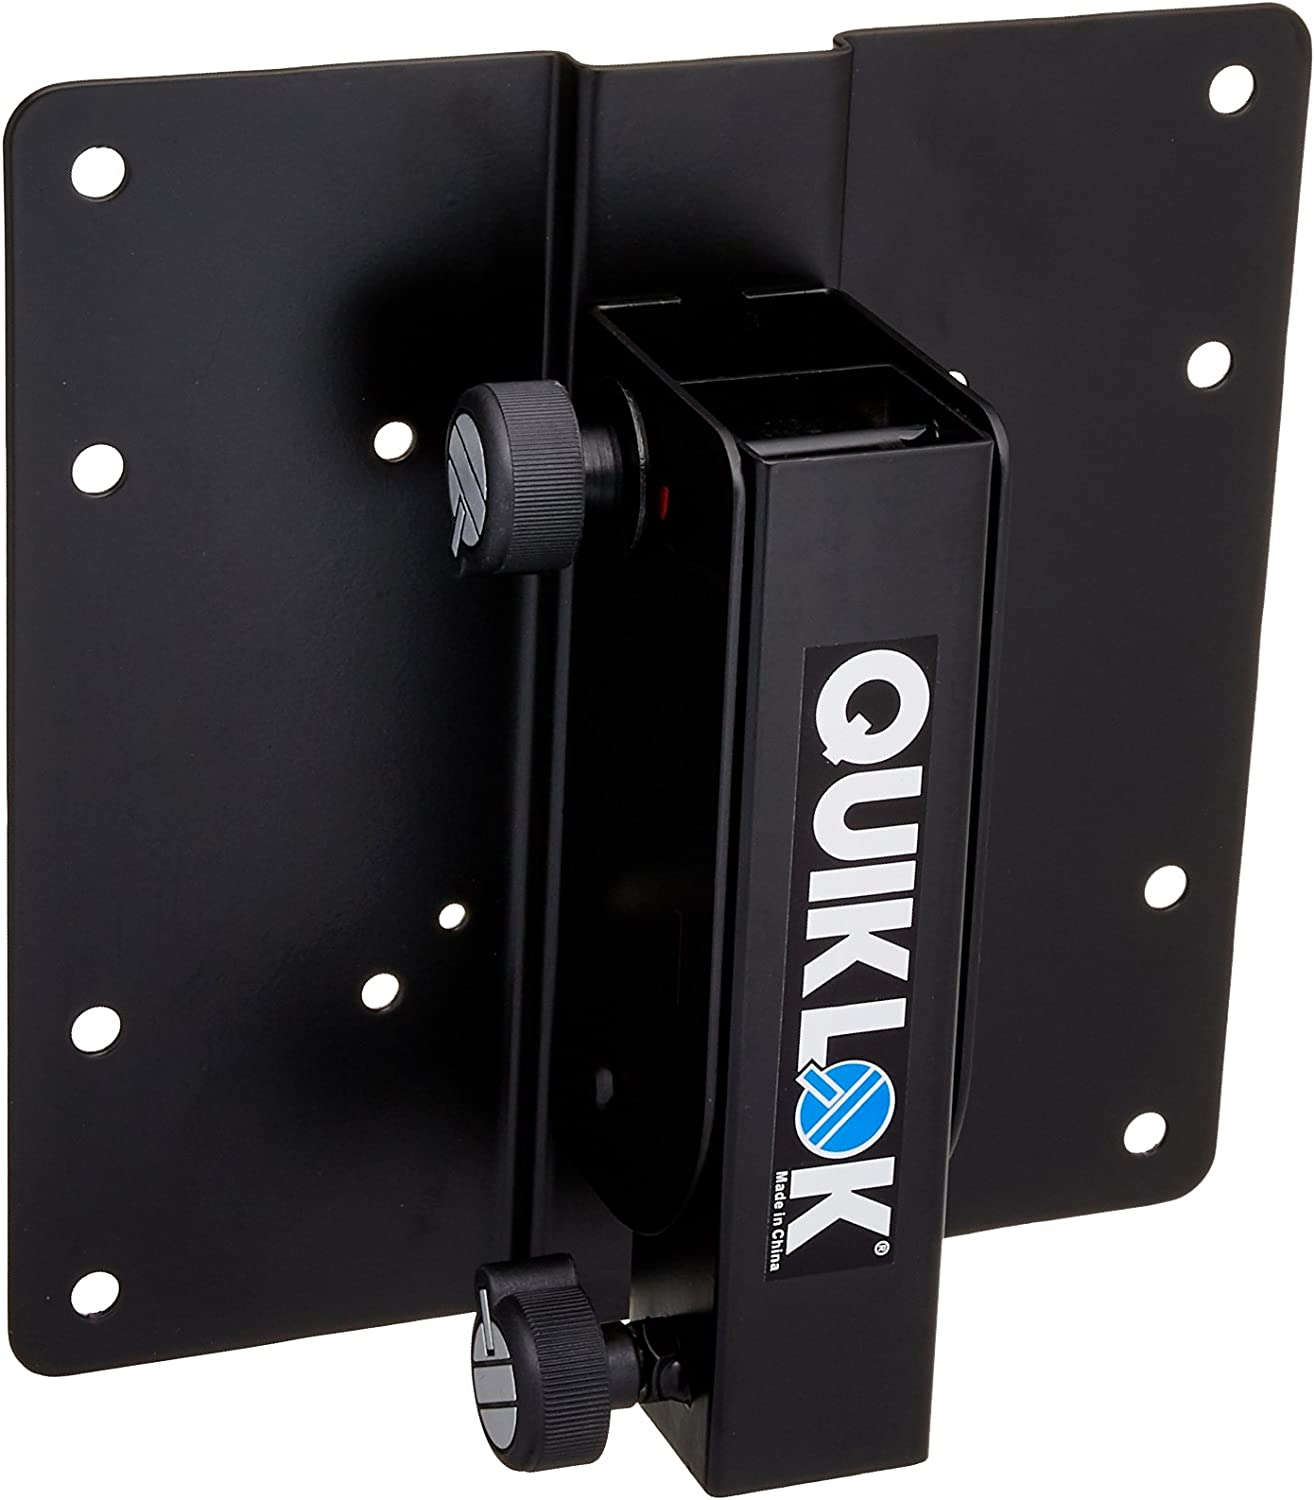 """Quik Lok Universal Mount for LED Flat Screens, LCD Displays and Video Monitors up to 40"""" (DSP-390)"""